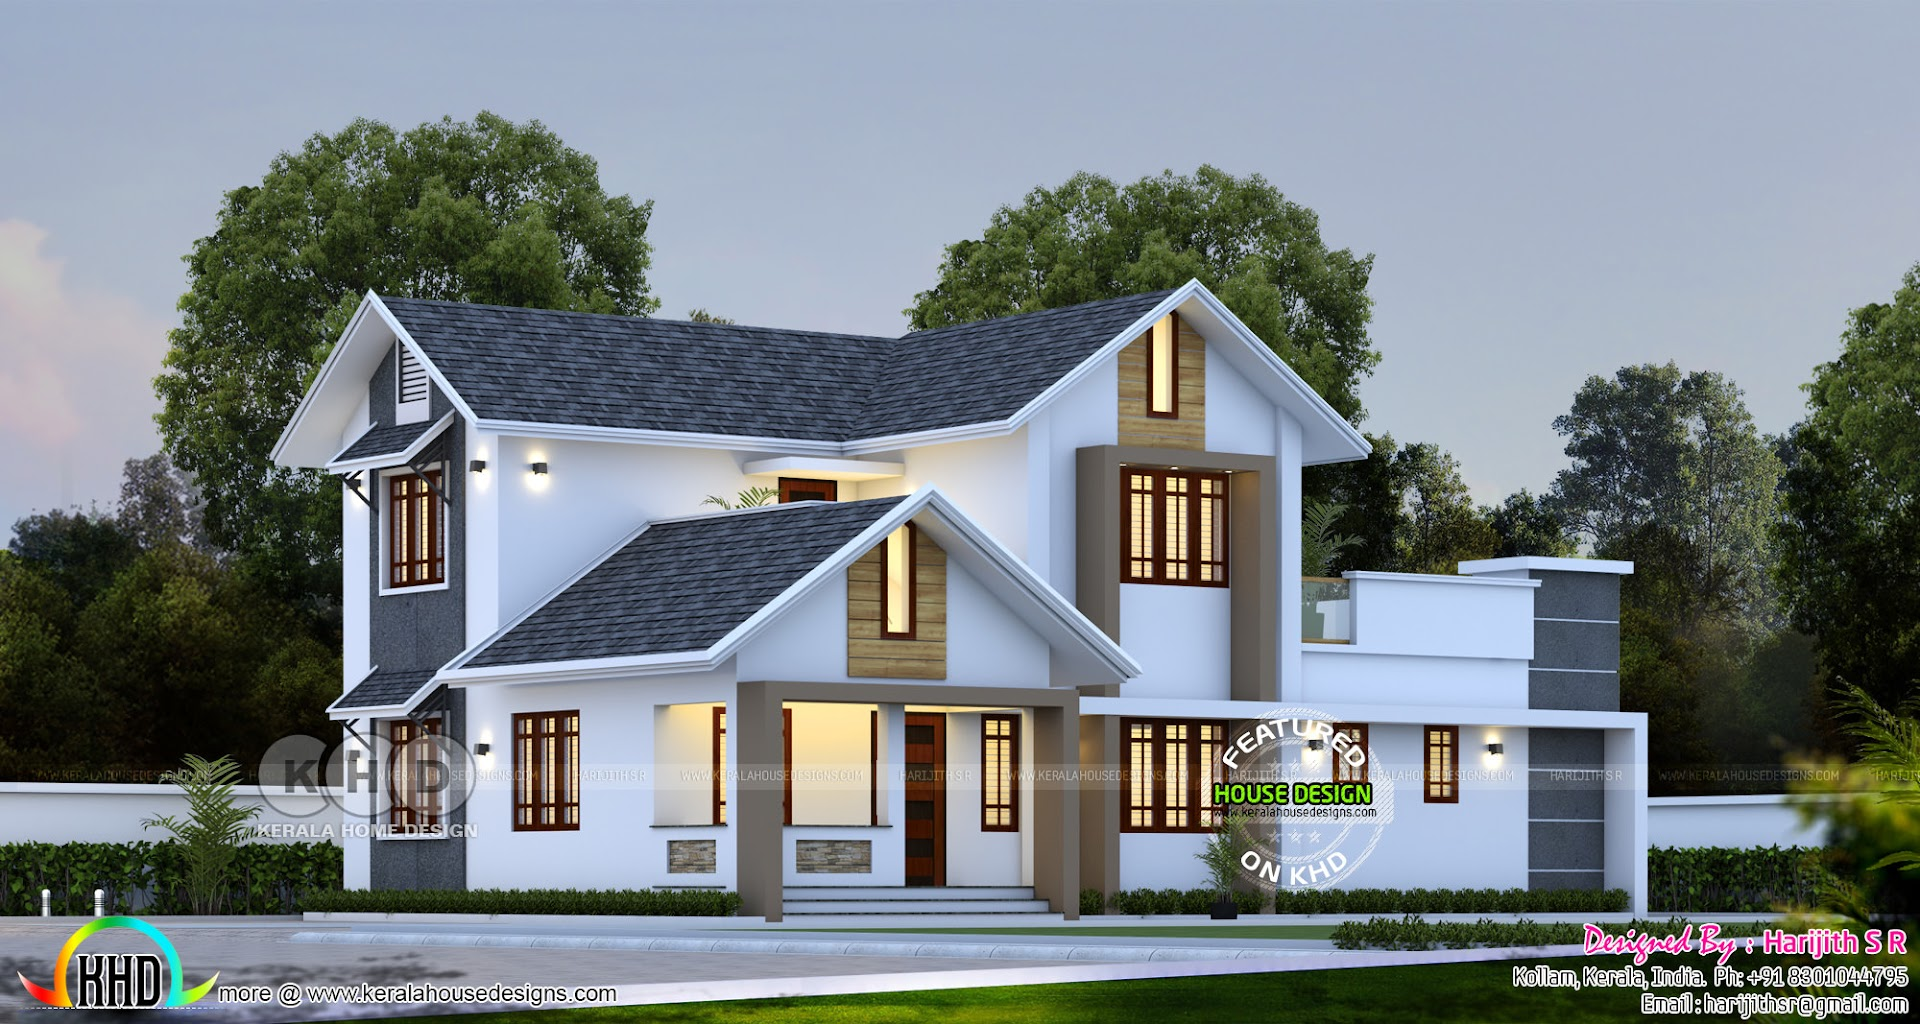 Sloped Roof Simple House Design At Kollam Kerala Home Design And Floor Plans 8000 Houses